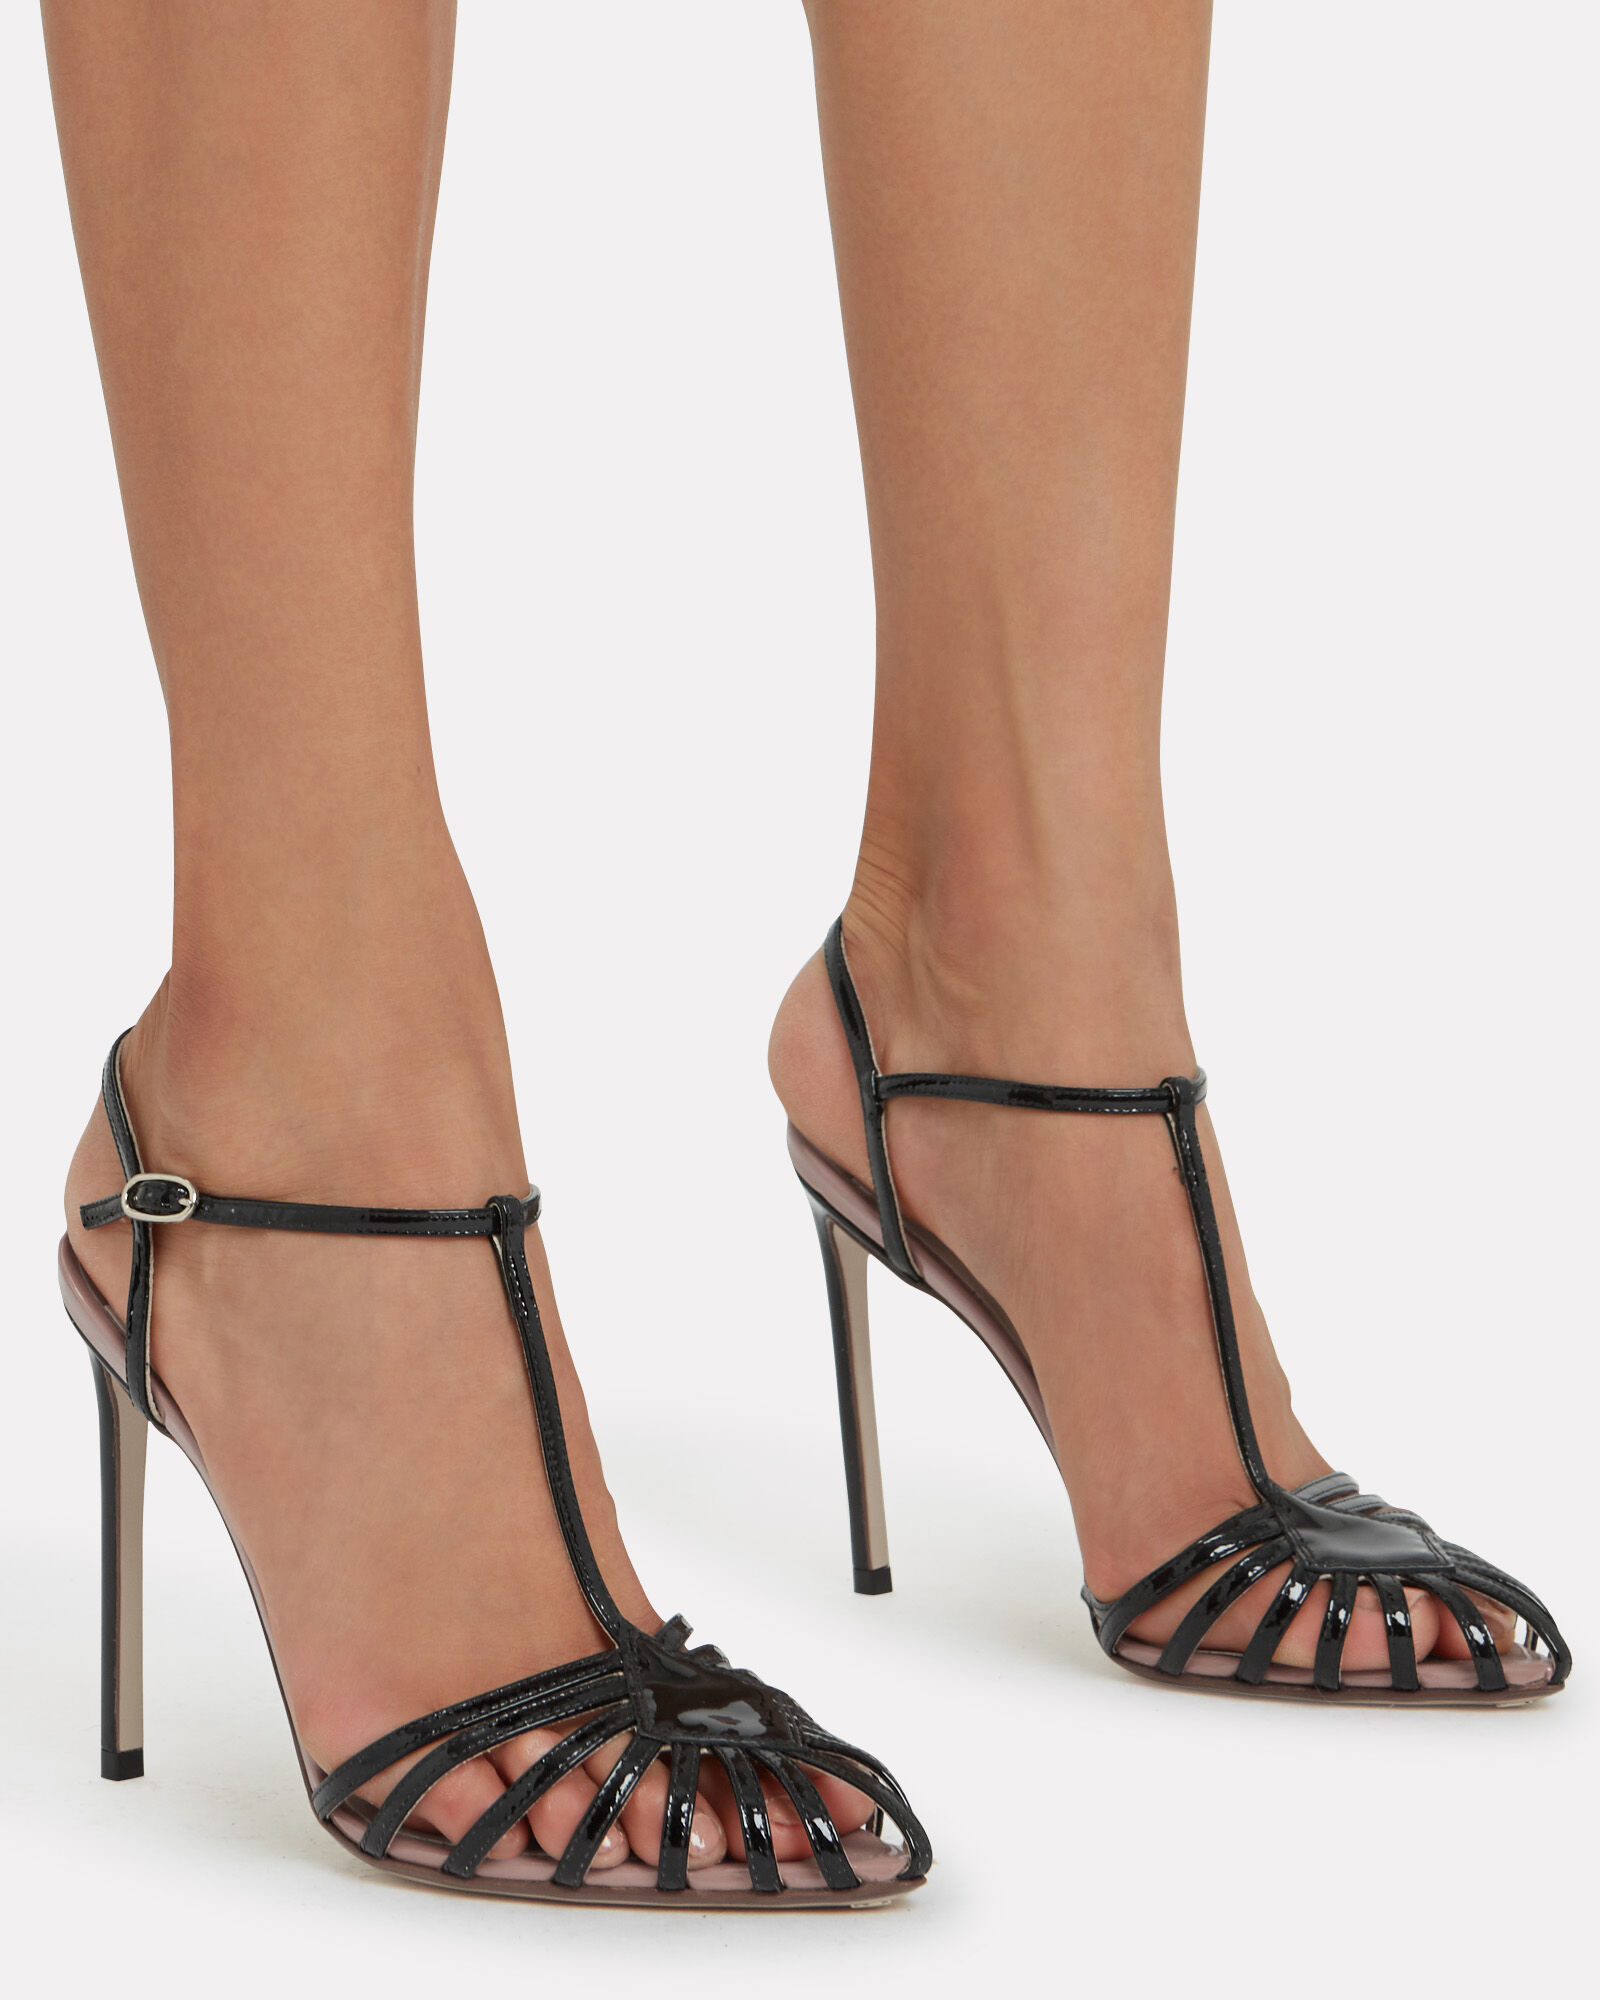 T-Strap Leather Stiletto Sandals, BLACK, hi-res